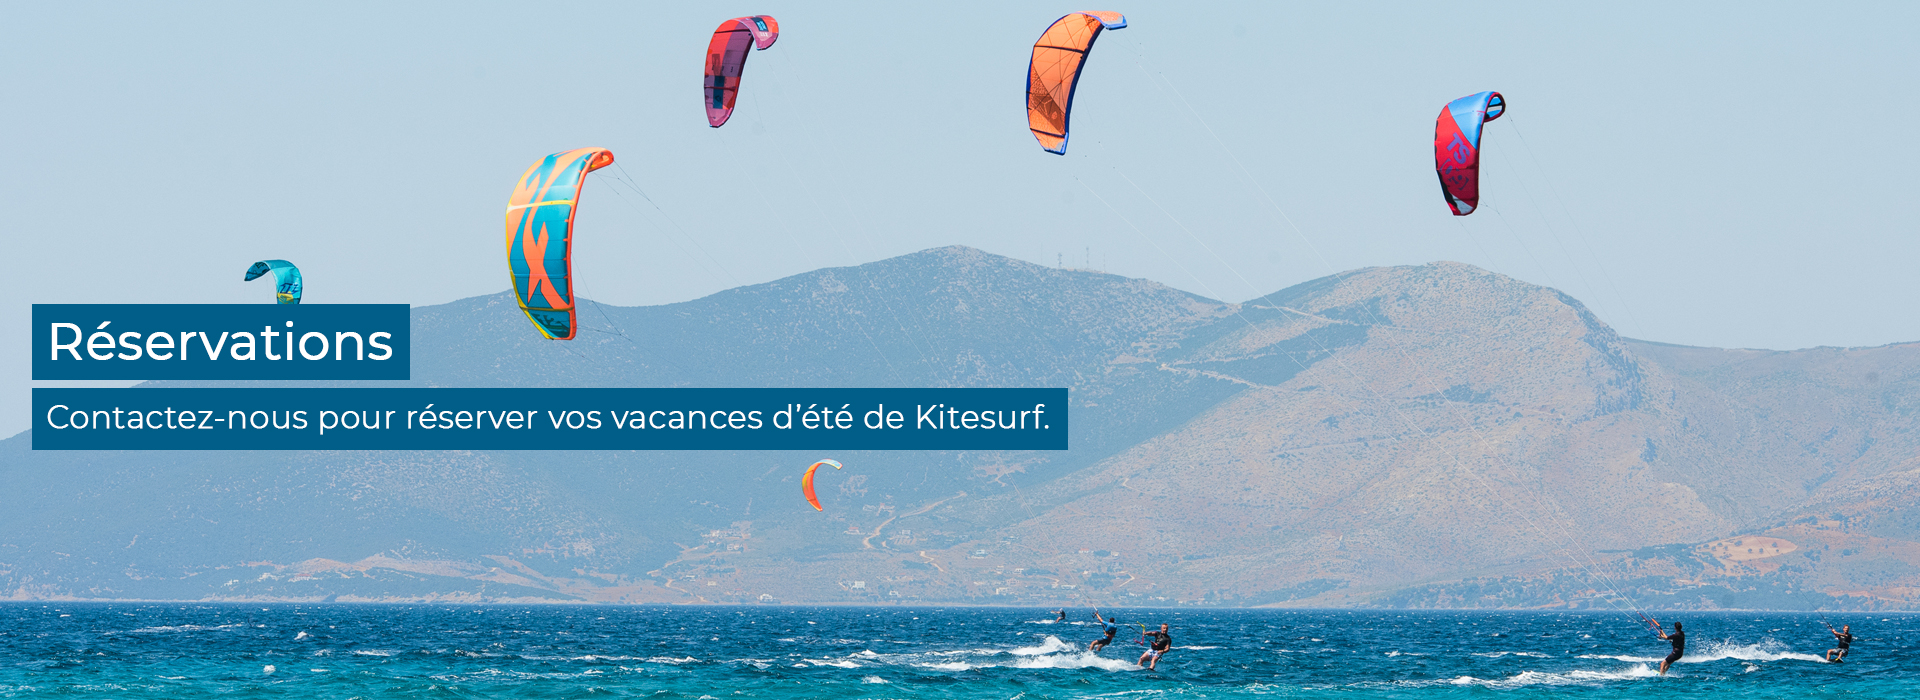 kitegreece reservations